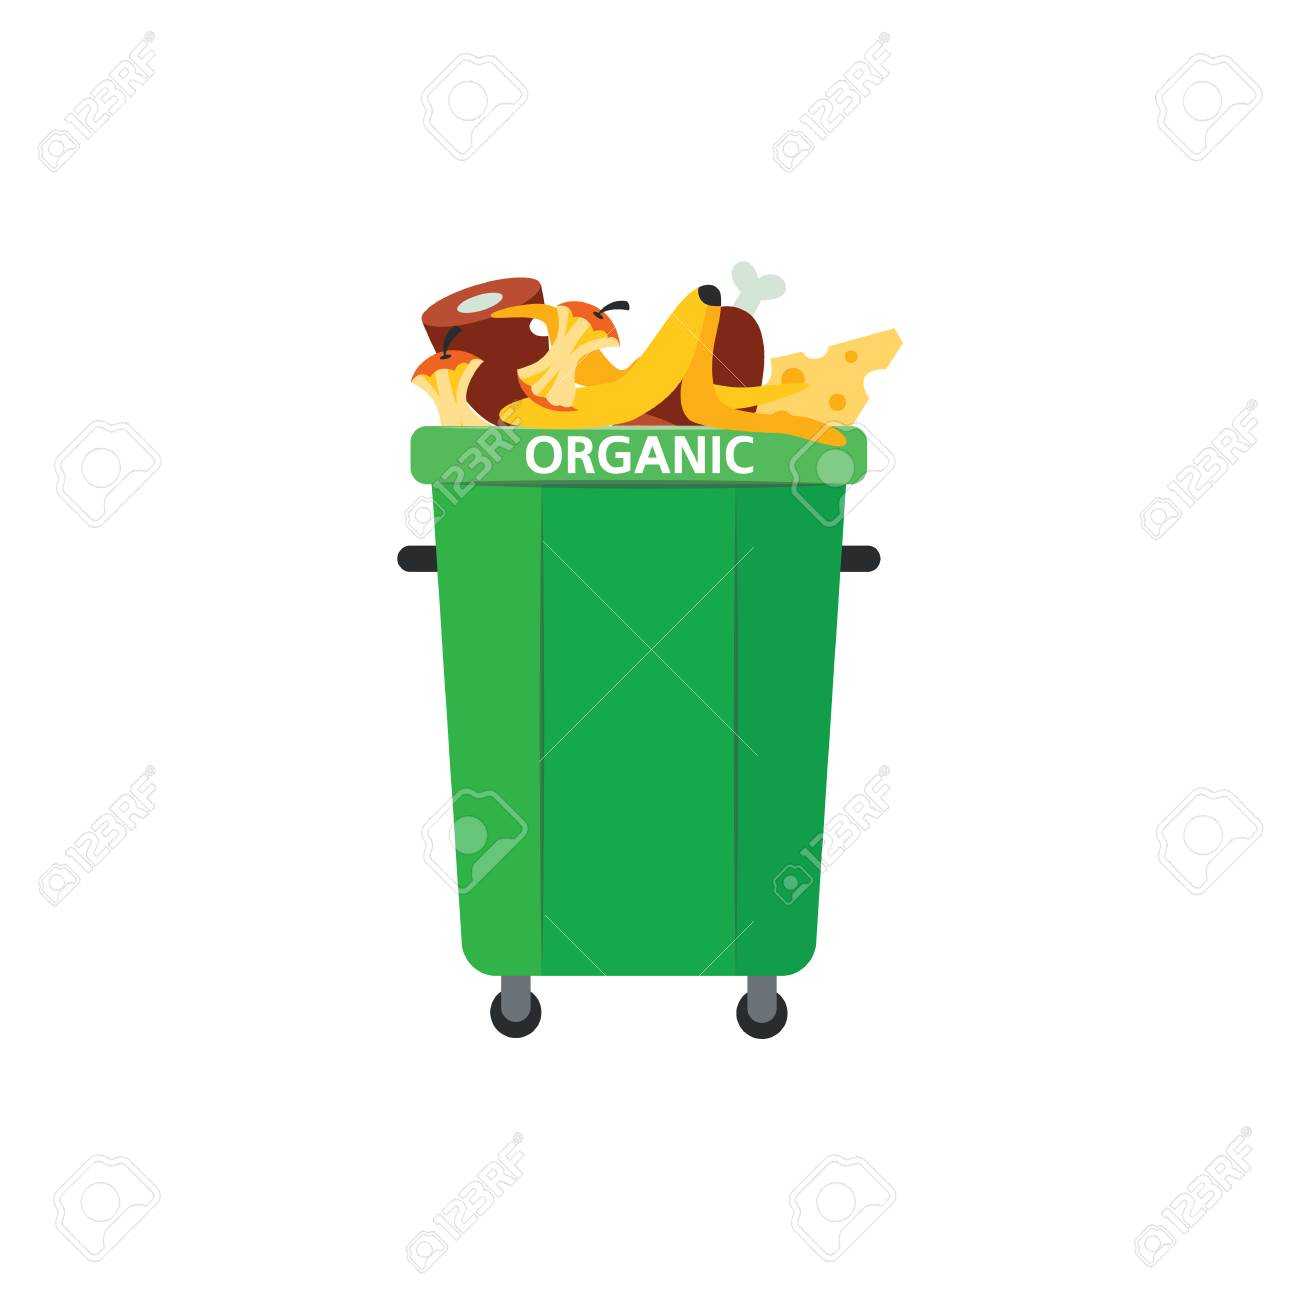 Recycle trash bin for organic garbage in flat style isolated on white background. Vector illustration of green full of food waste for separating and sorting rubbish concept. - 113886953